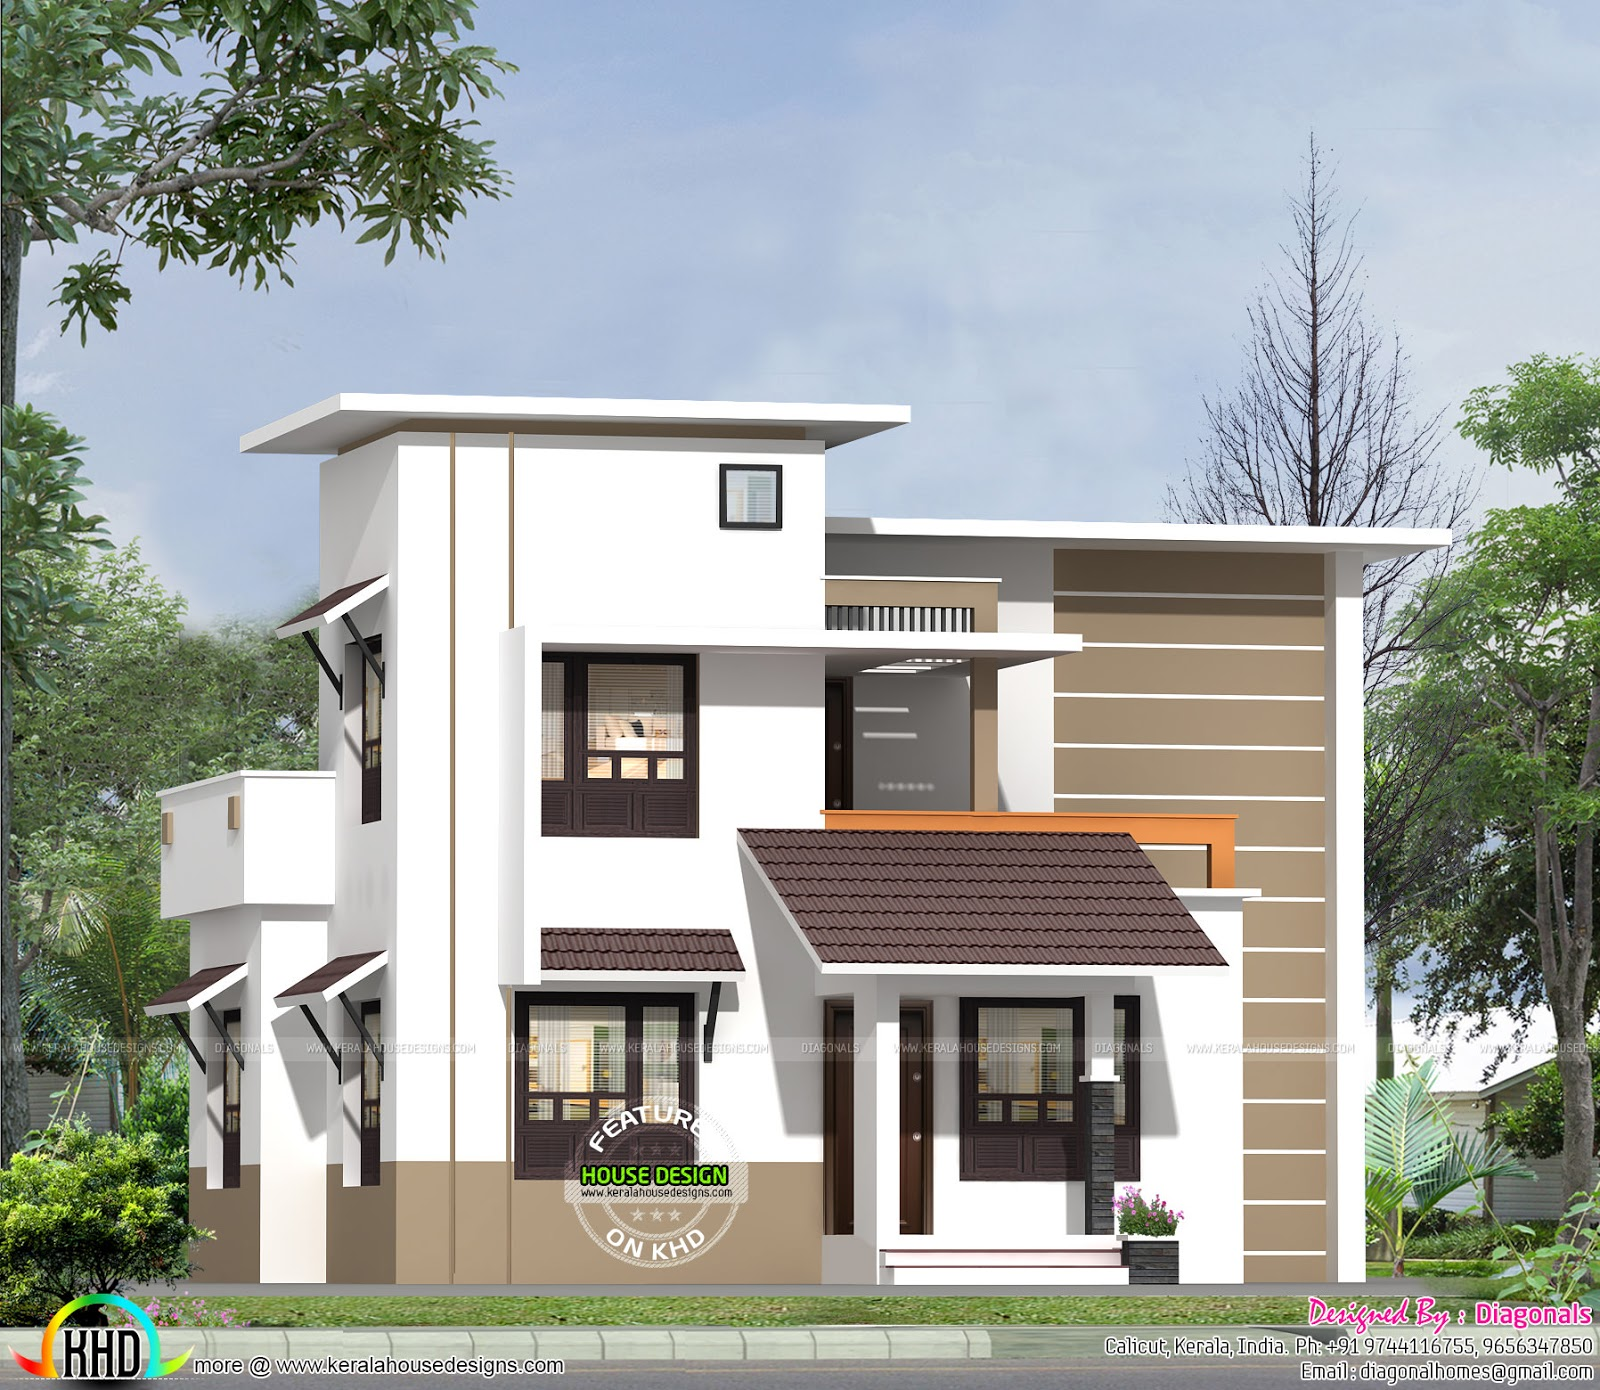 Affordable low cost home kerala home design and floor plans for Low cost house plans with photos